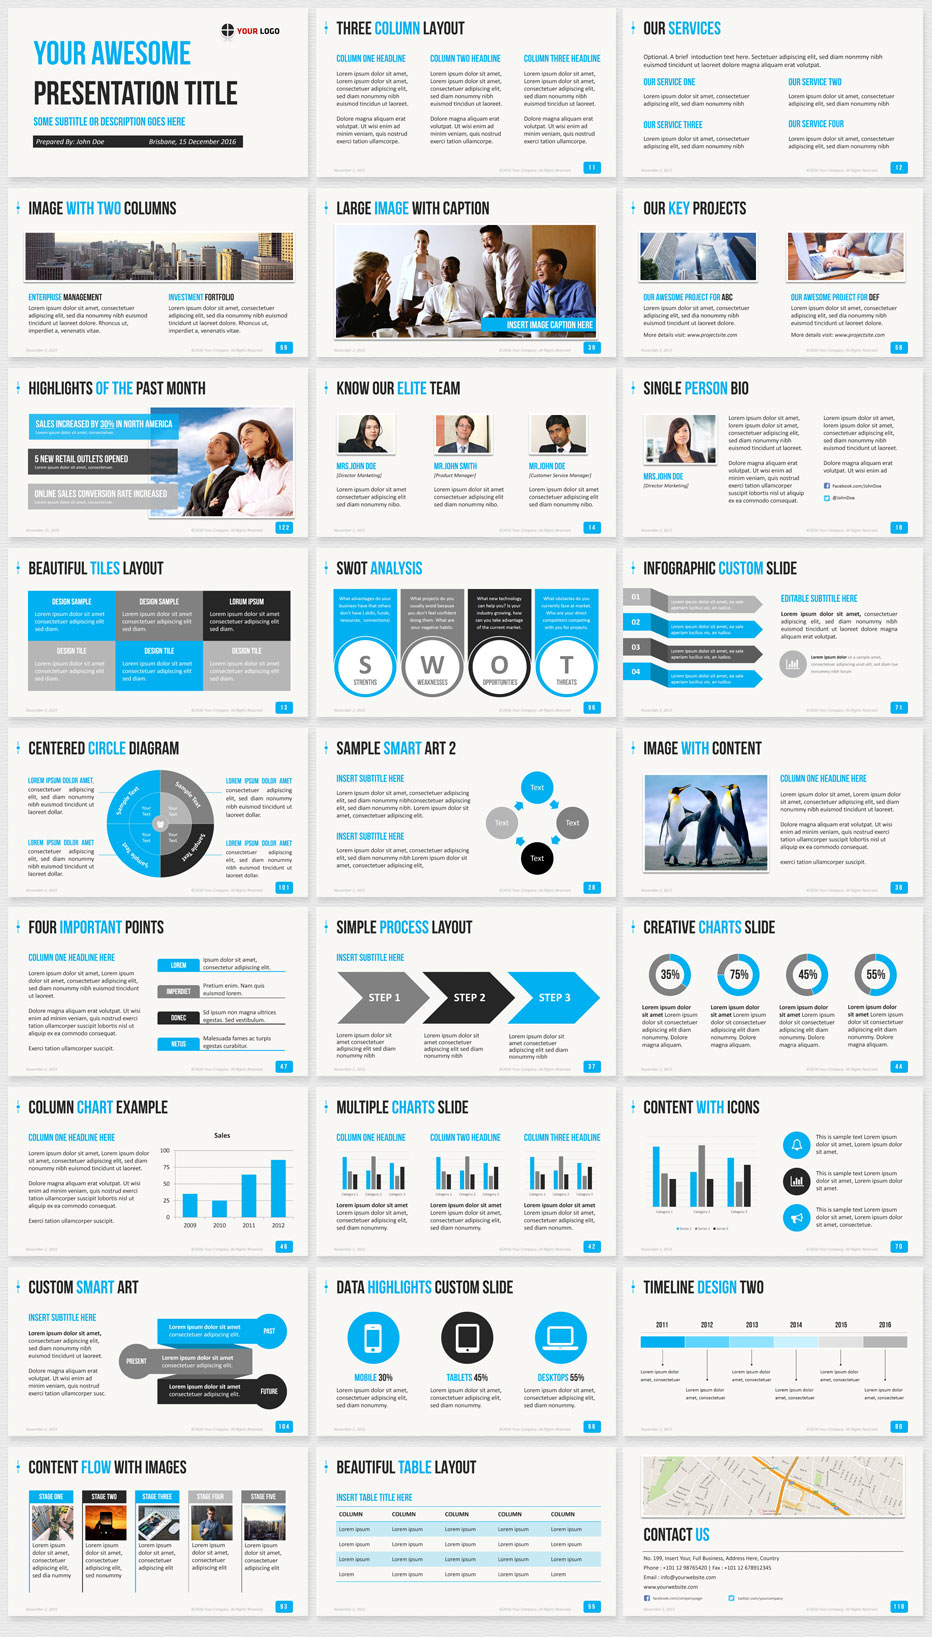 Ultimate Professional Business PowerPoint Template - 1200+ Clean Slides